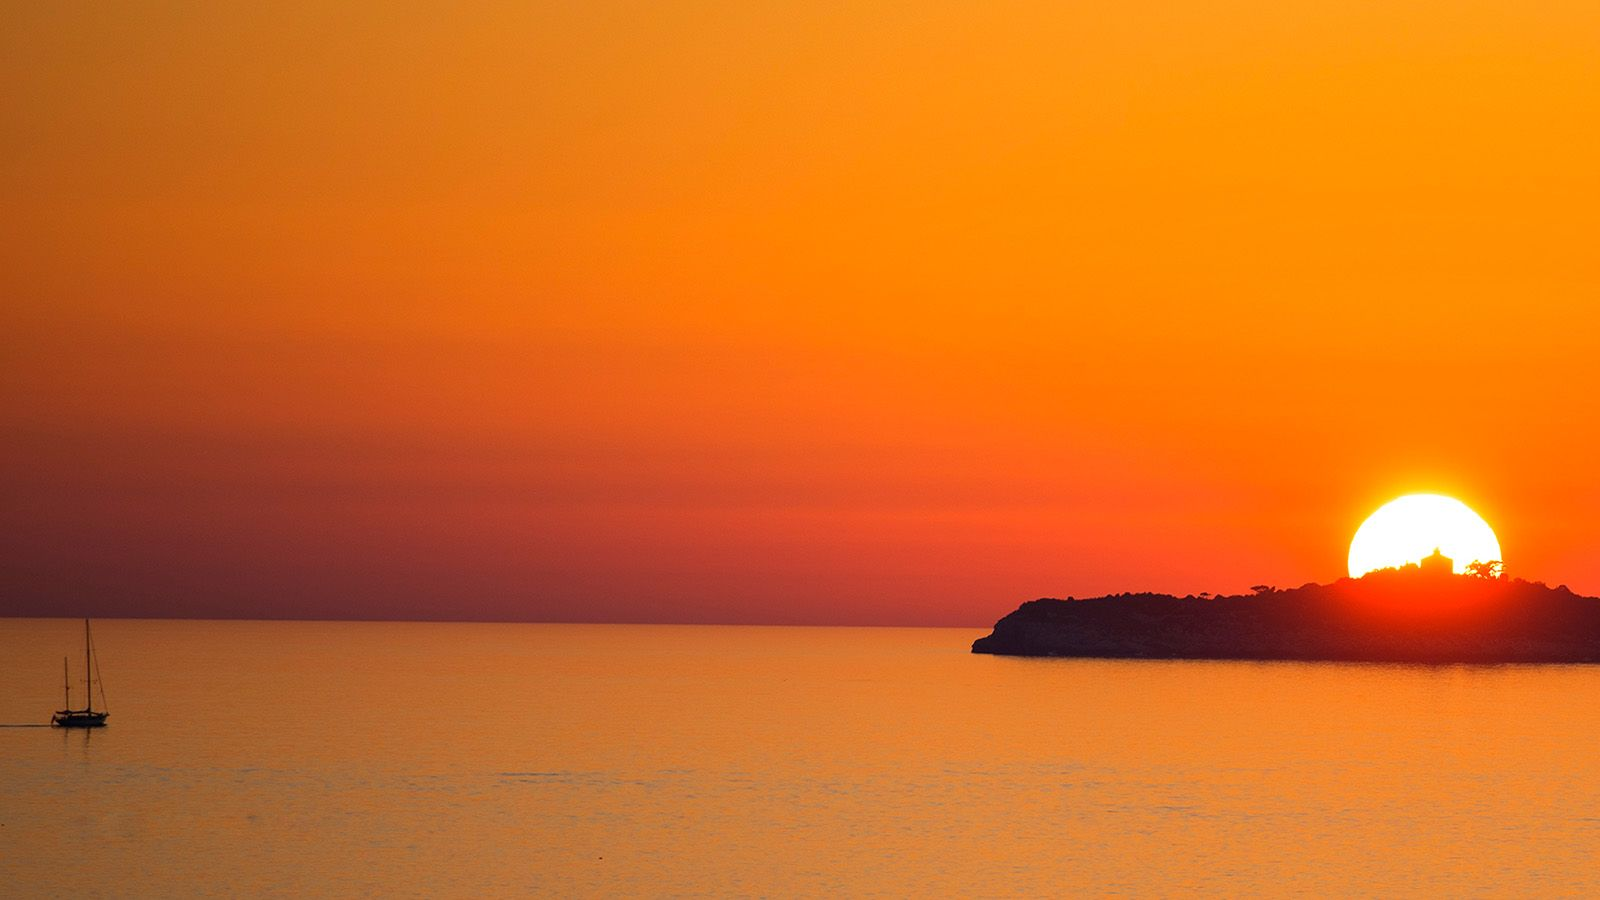 The sunset over the Lokrum island